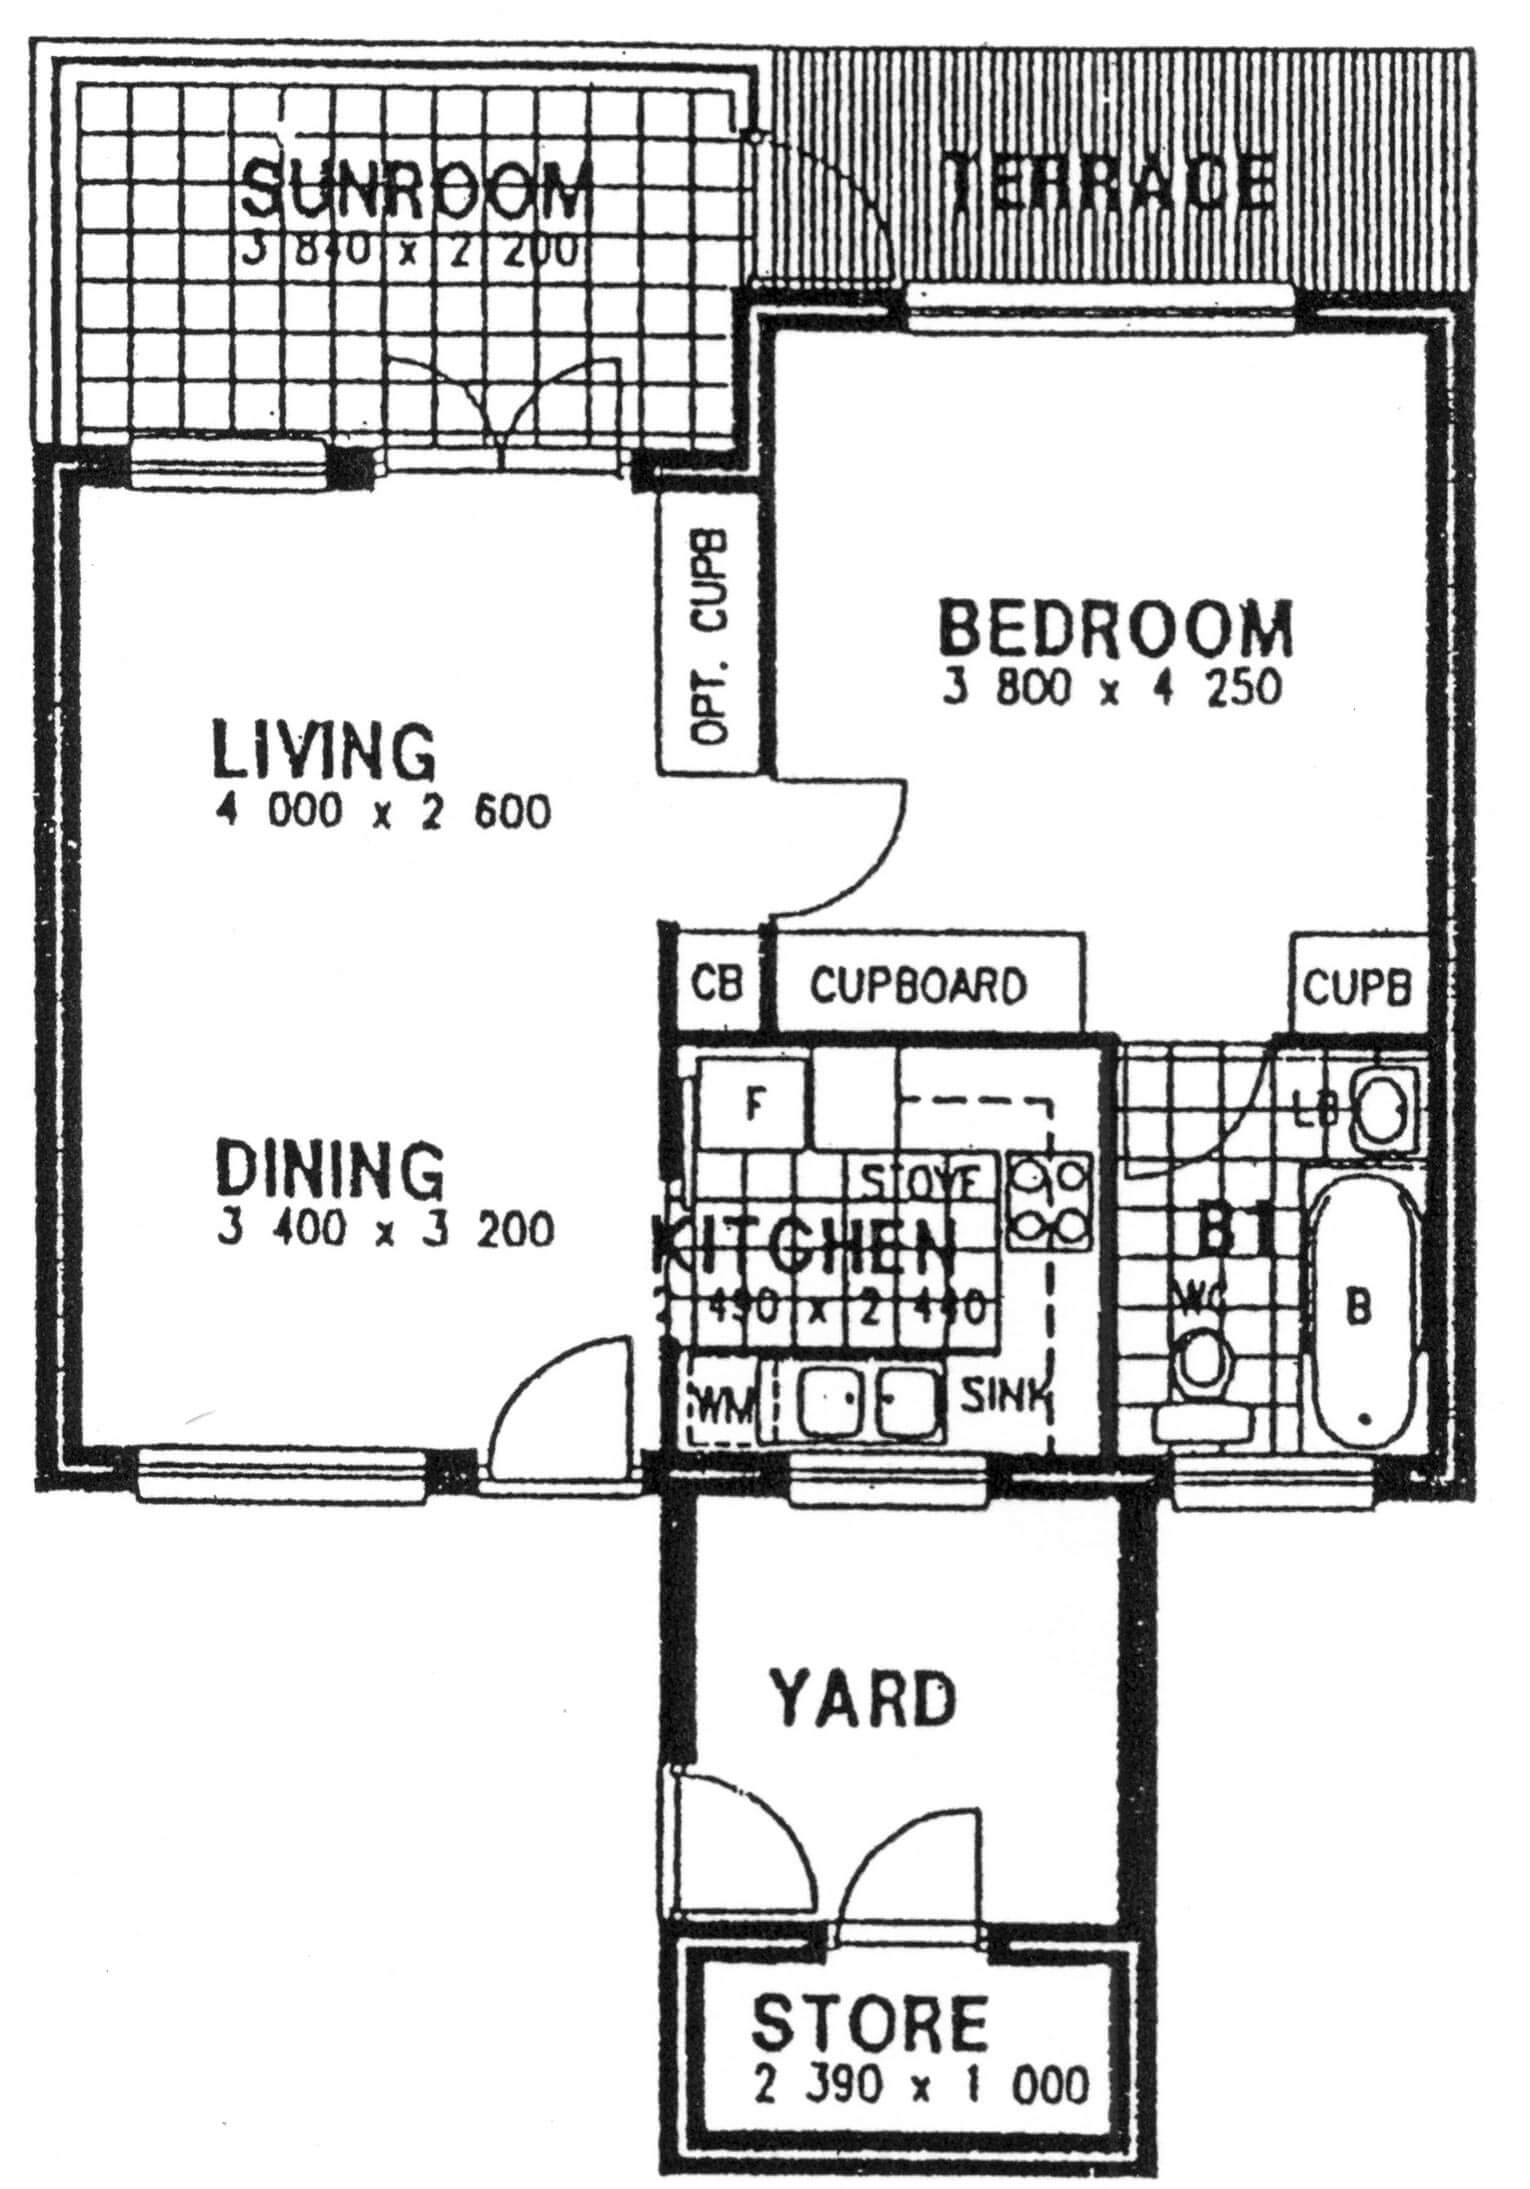 Floor Plan - Birch Floor Plan